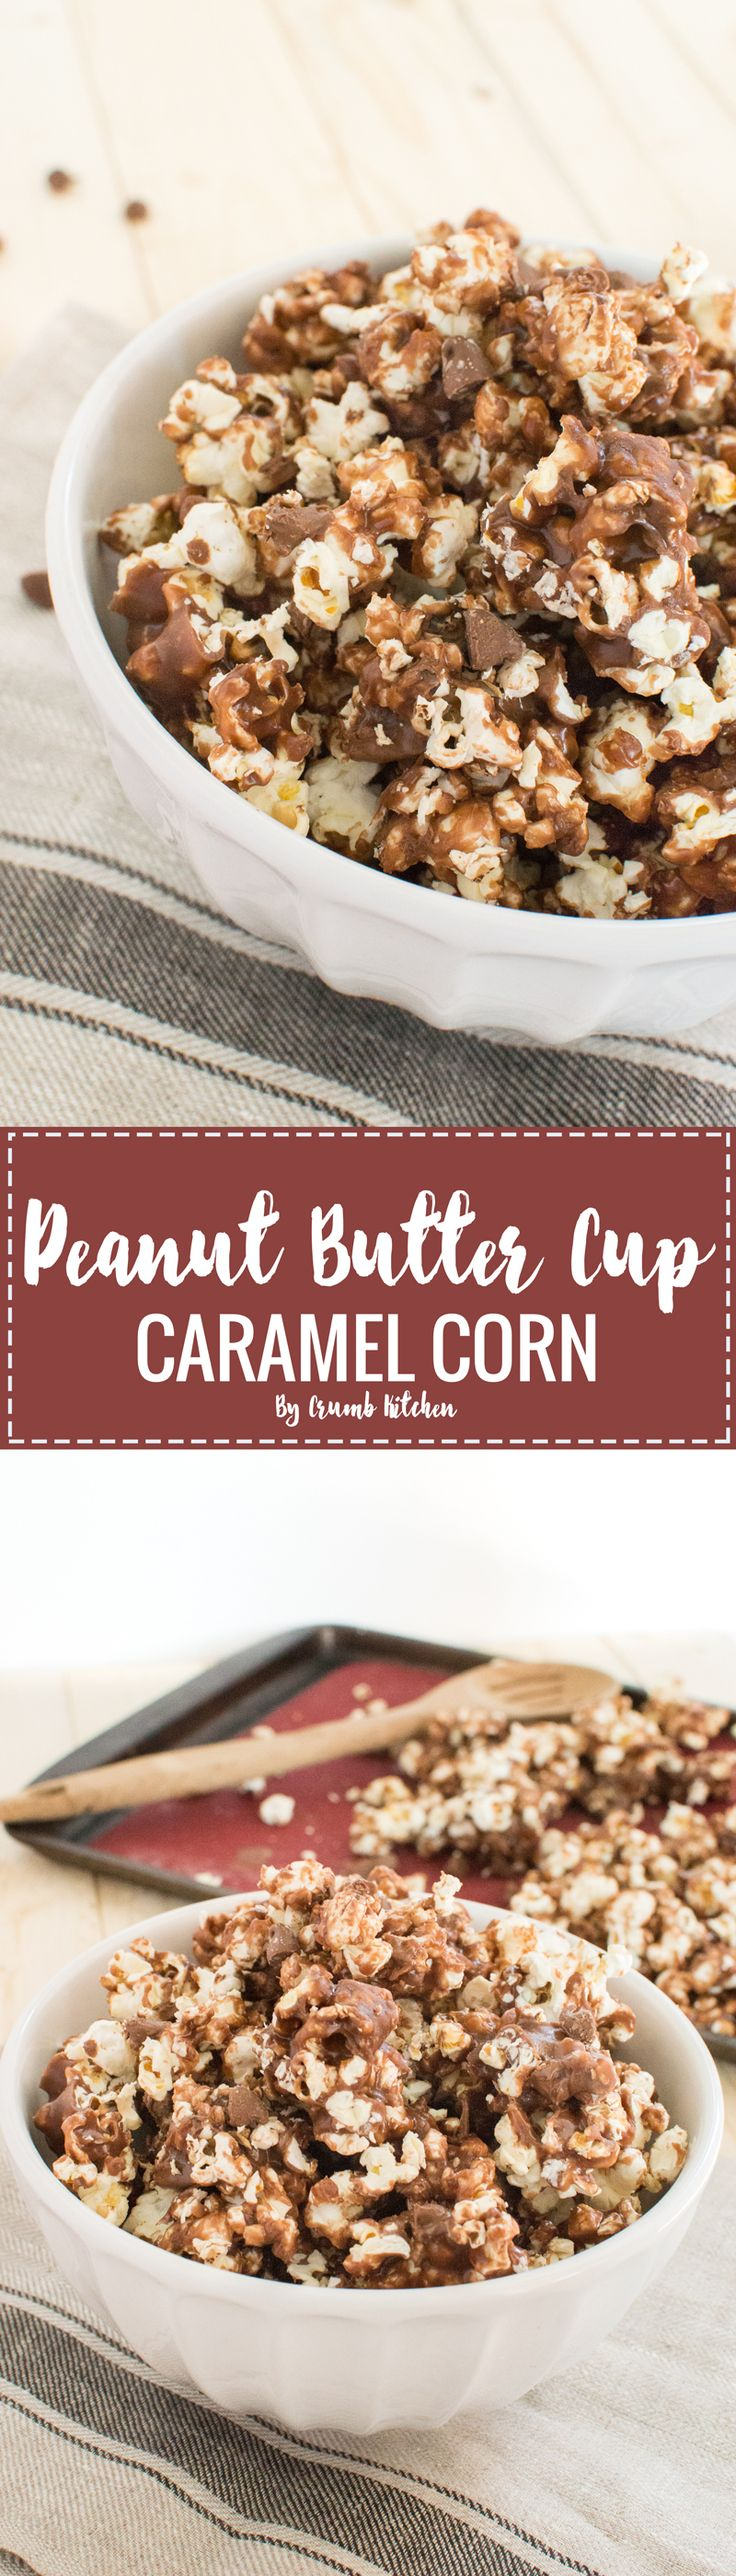 Melted chocolate peanut butter spread and a delicious caramel sauce coats this flavourful Peanut Butter Cup Caramel Corn. | Crumb Kitchen